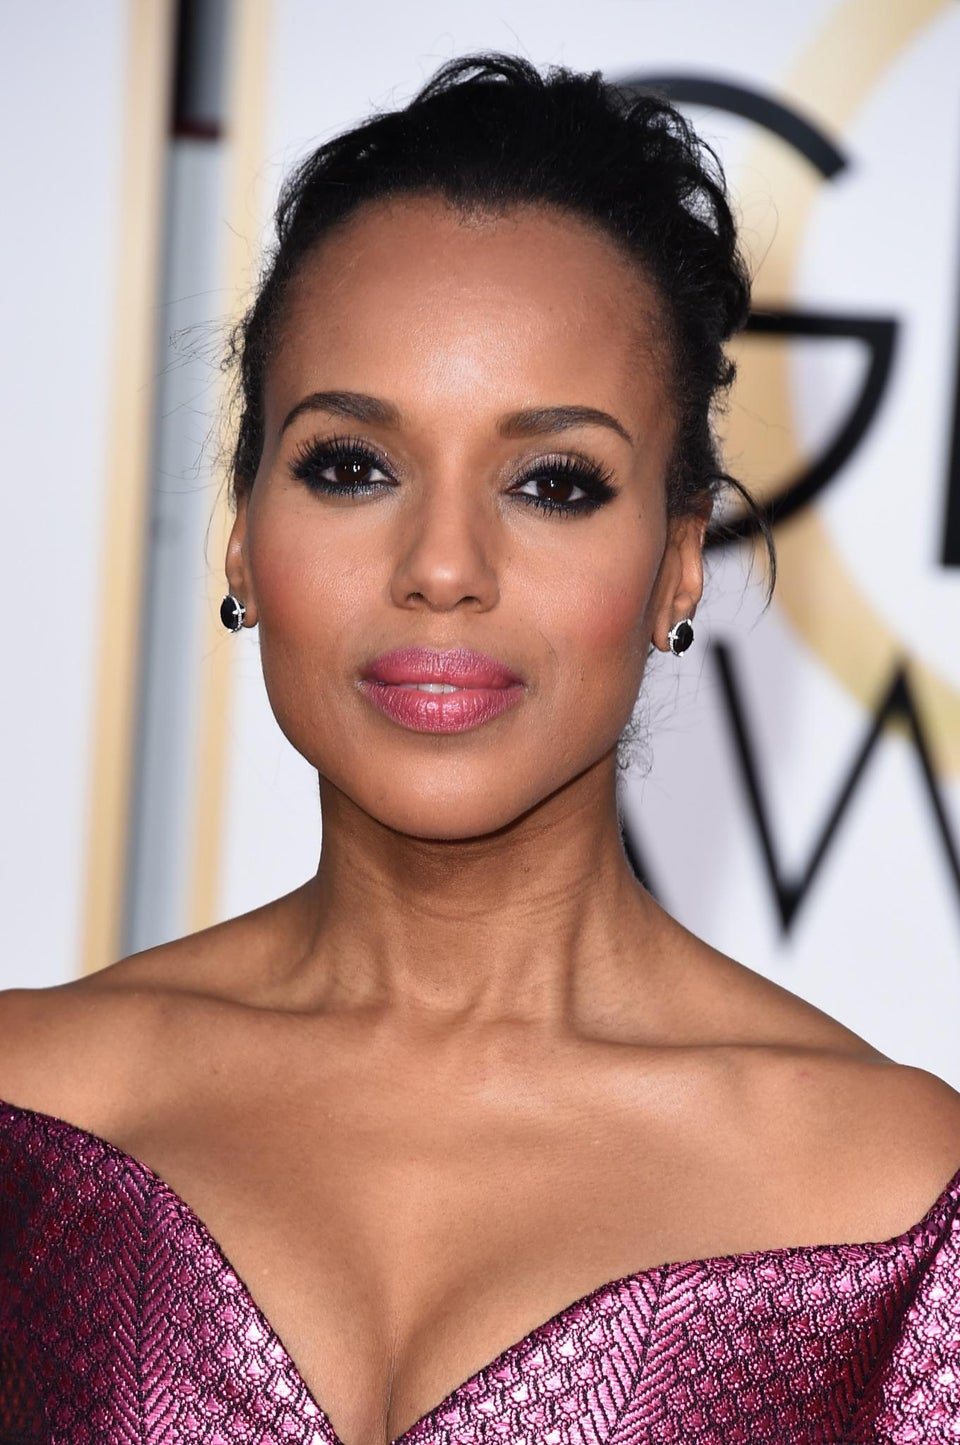 Kerry Washington Explains How She Lost the Baby Weight